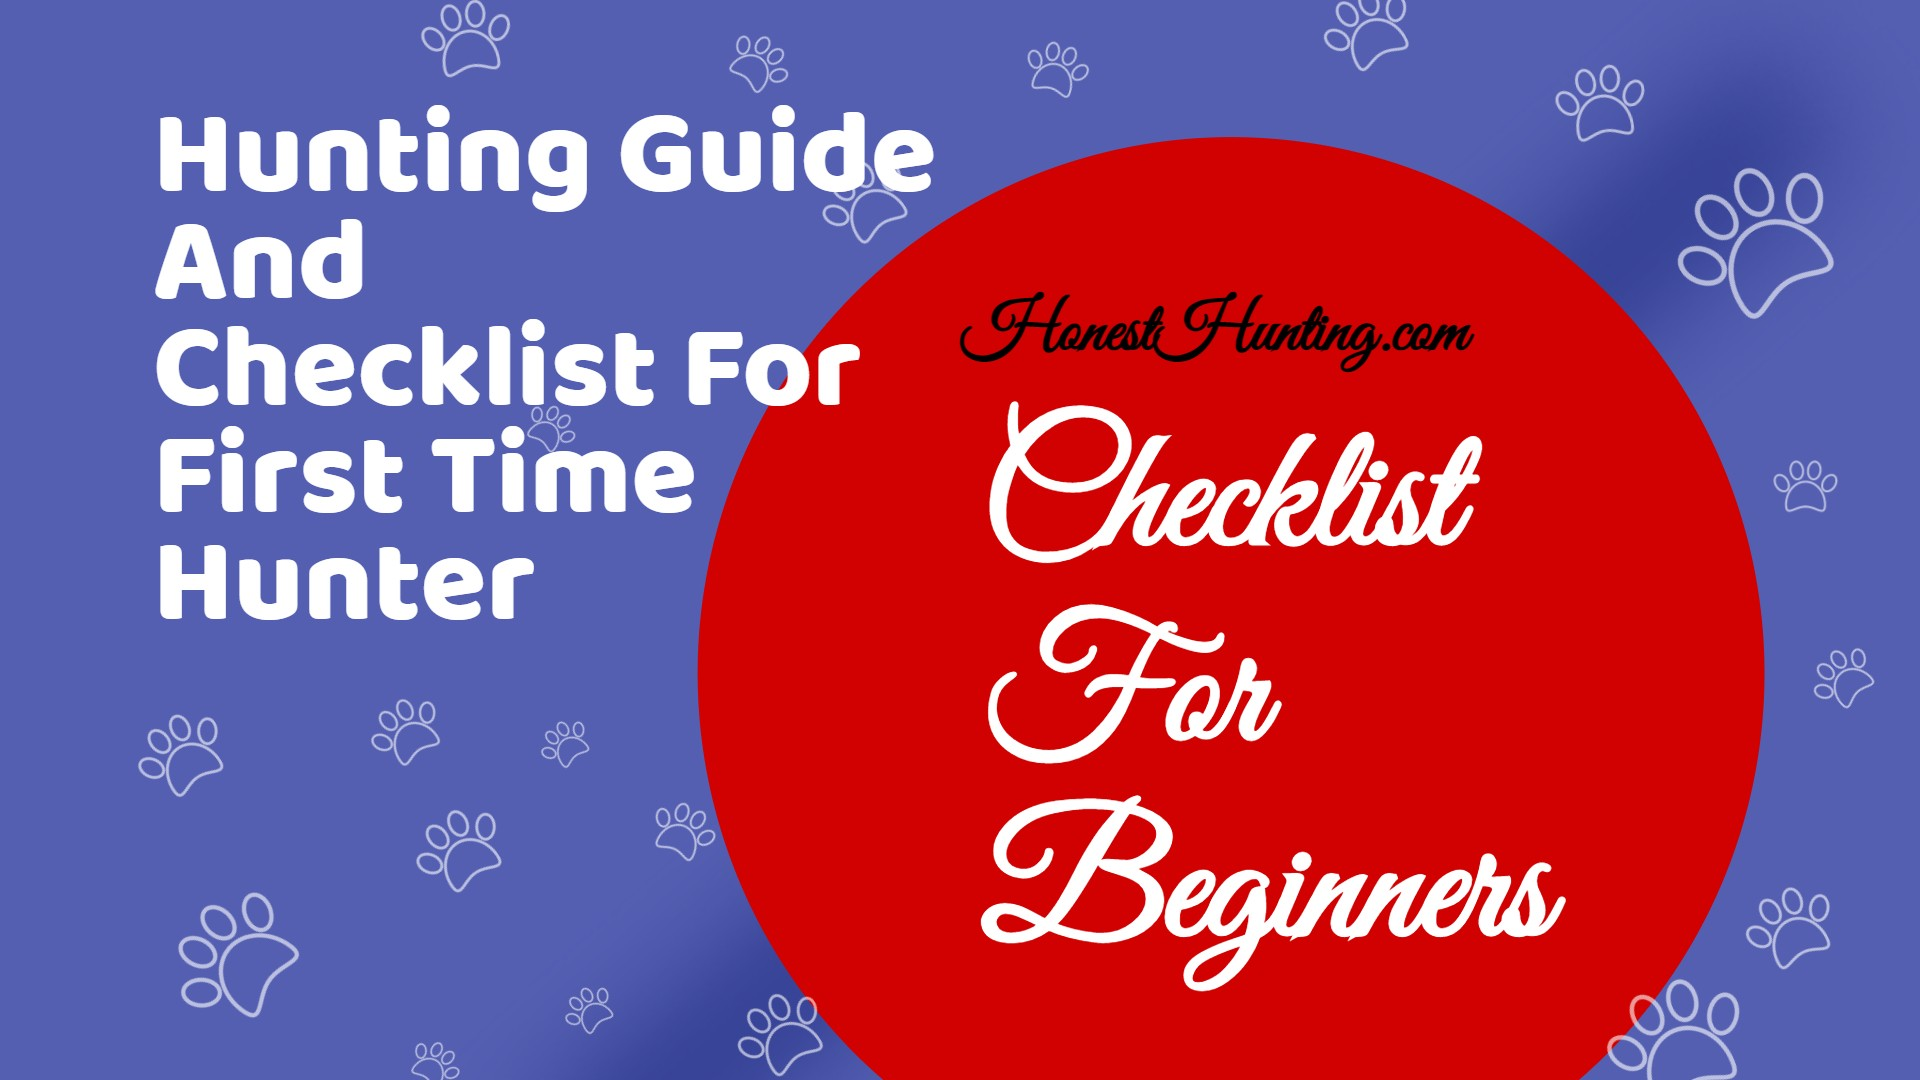 Checklist For First Time Hunter